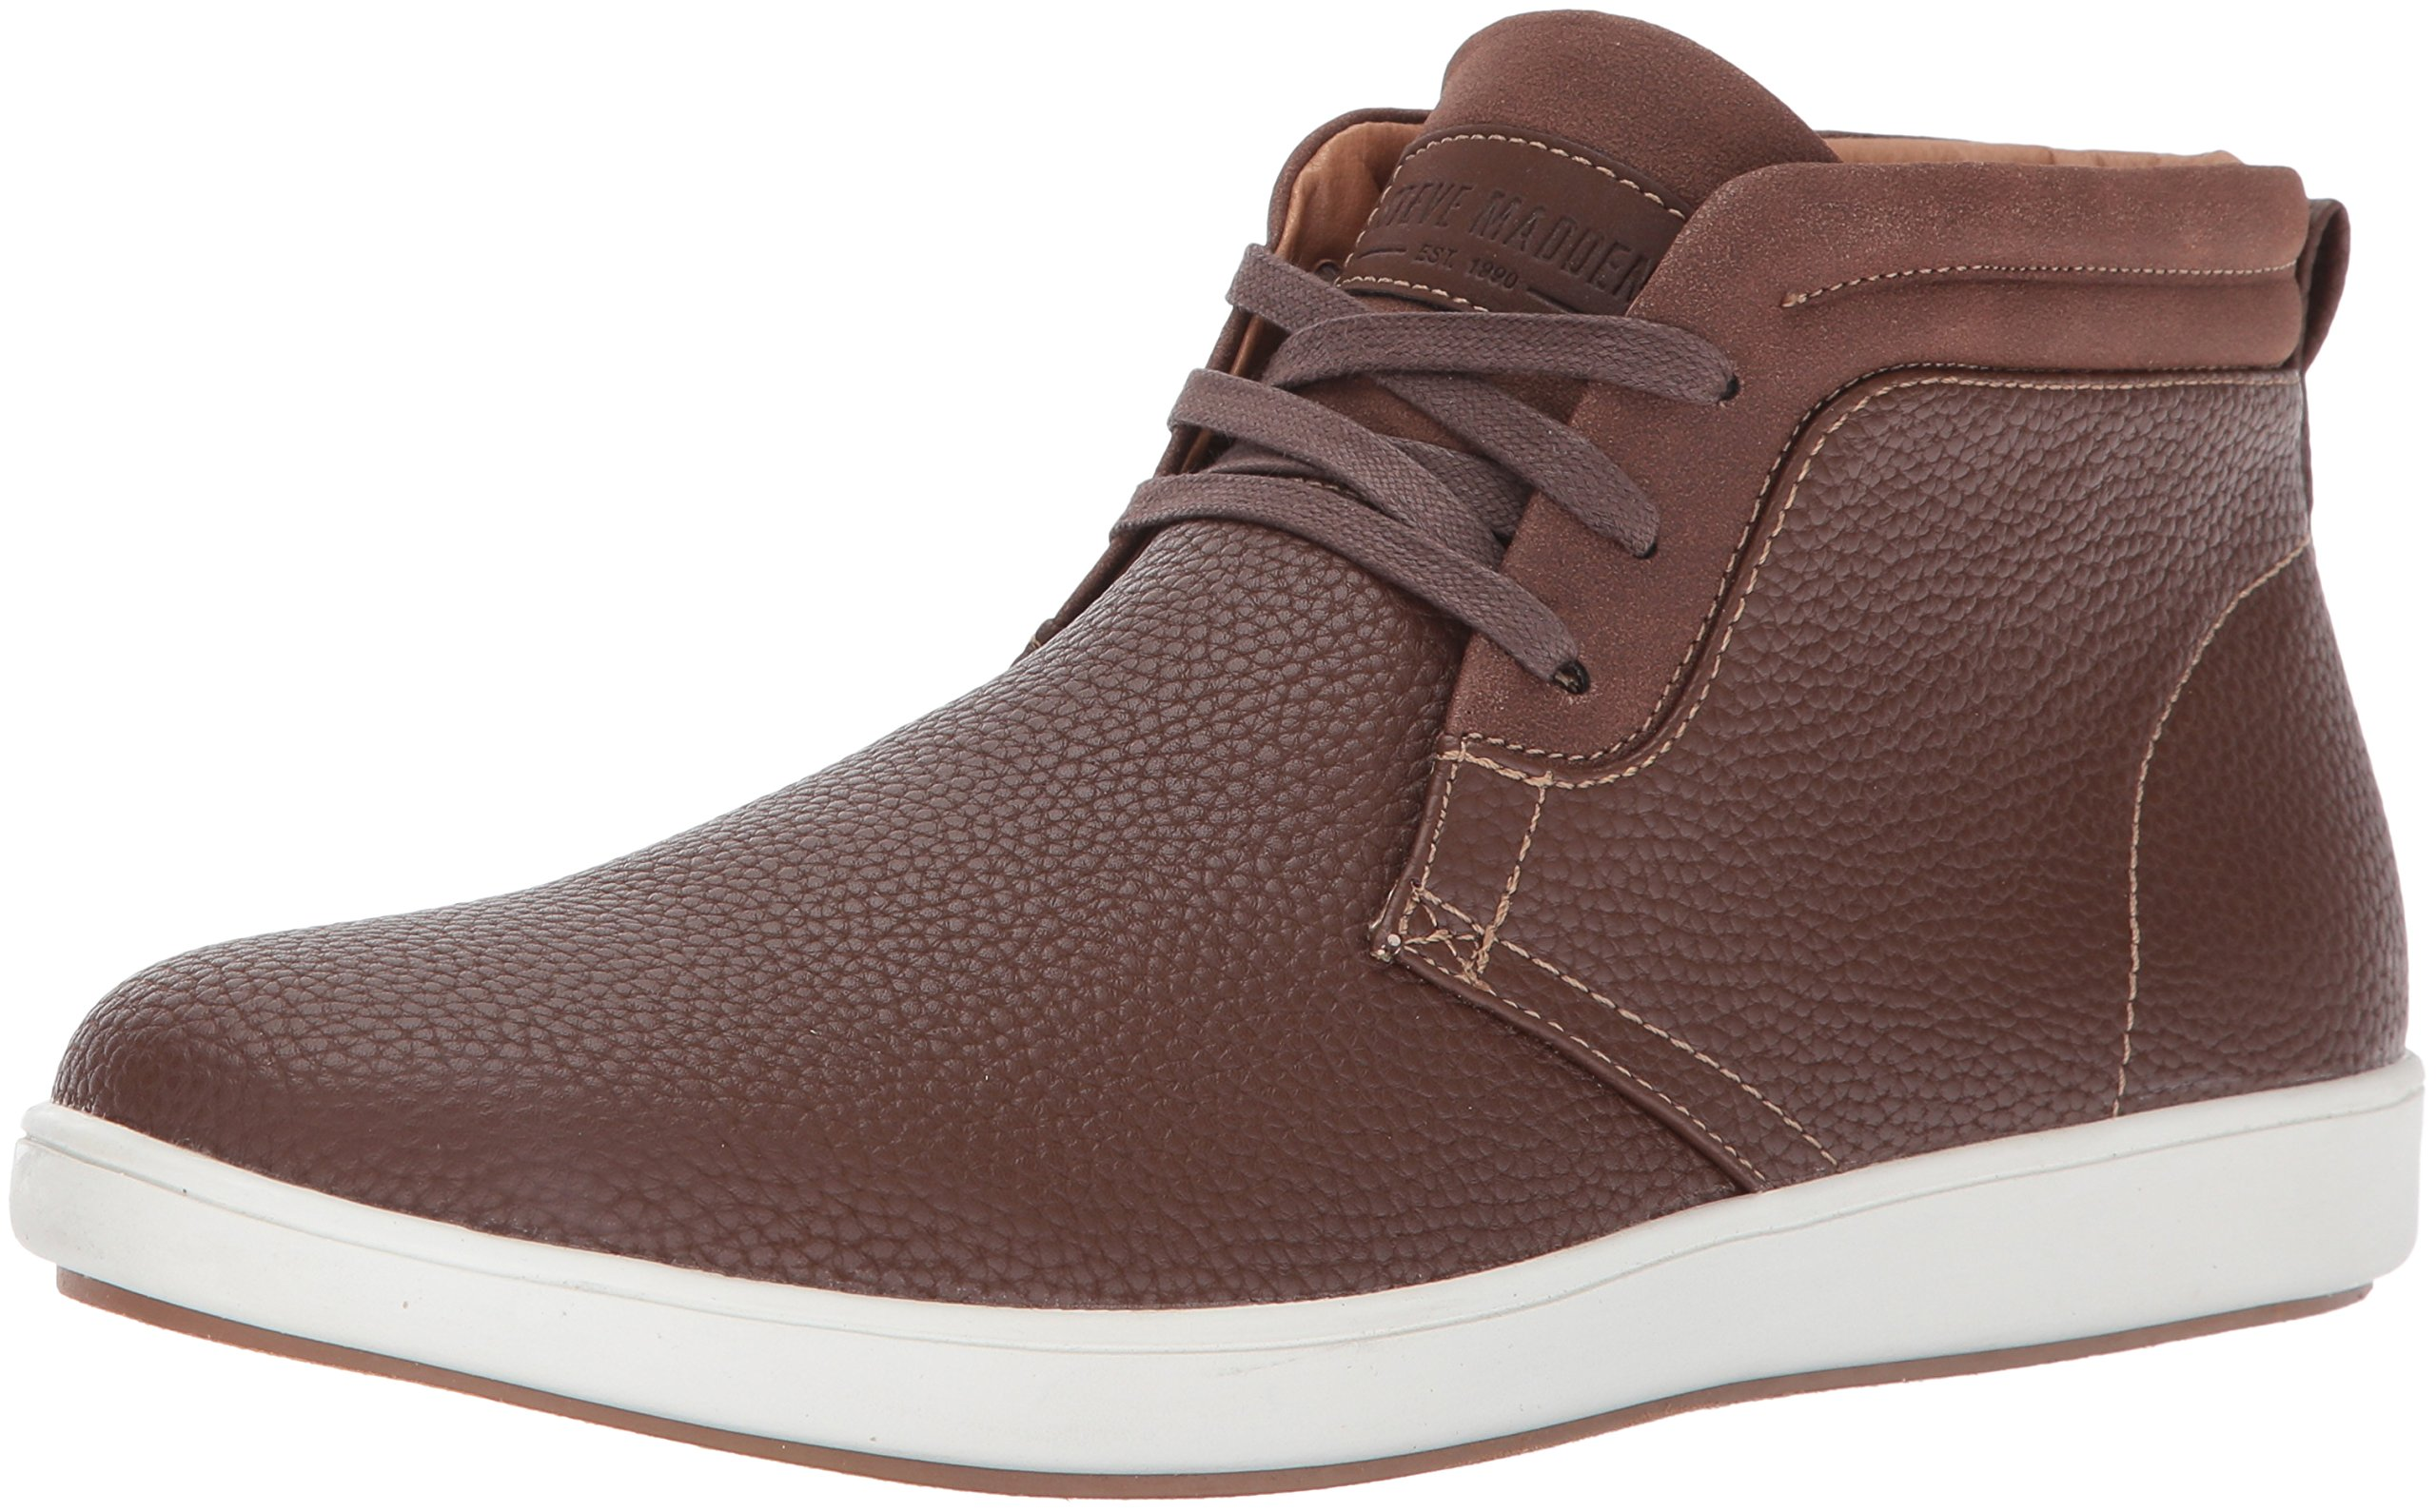 Steve Madden Men's Fenway Sneaker, Brown, 13 M US